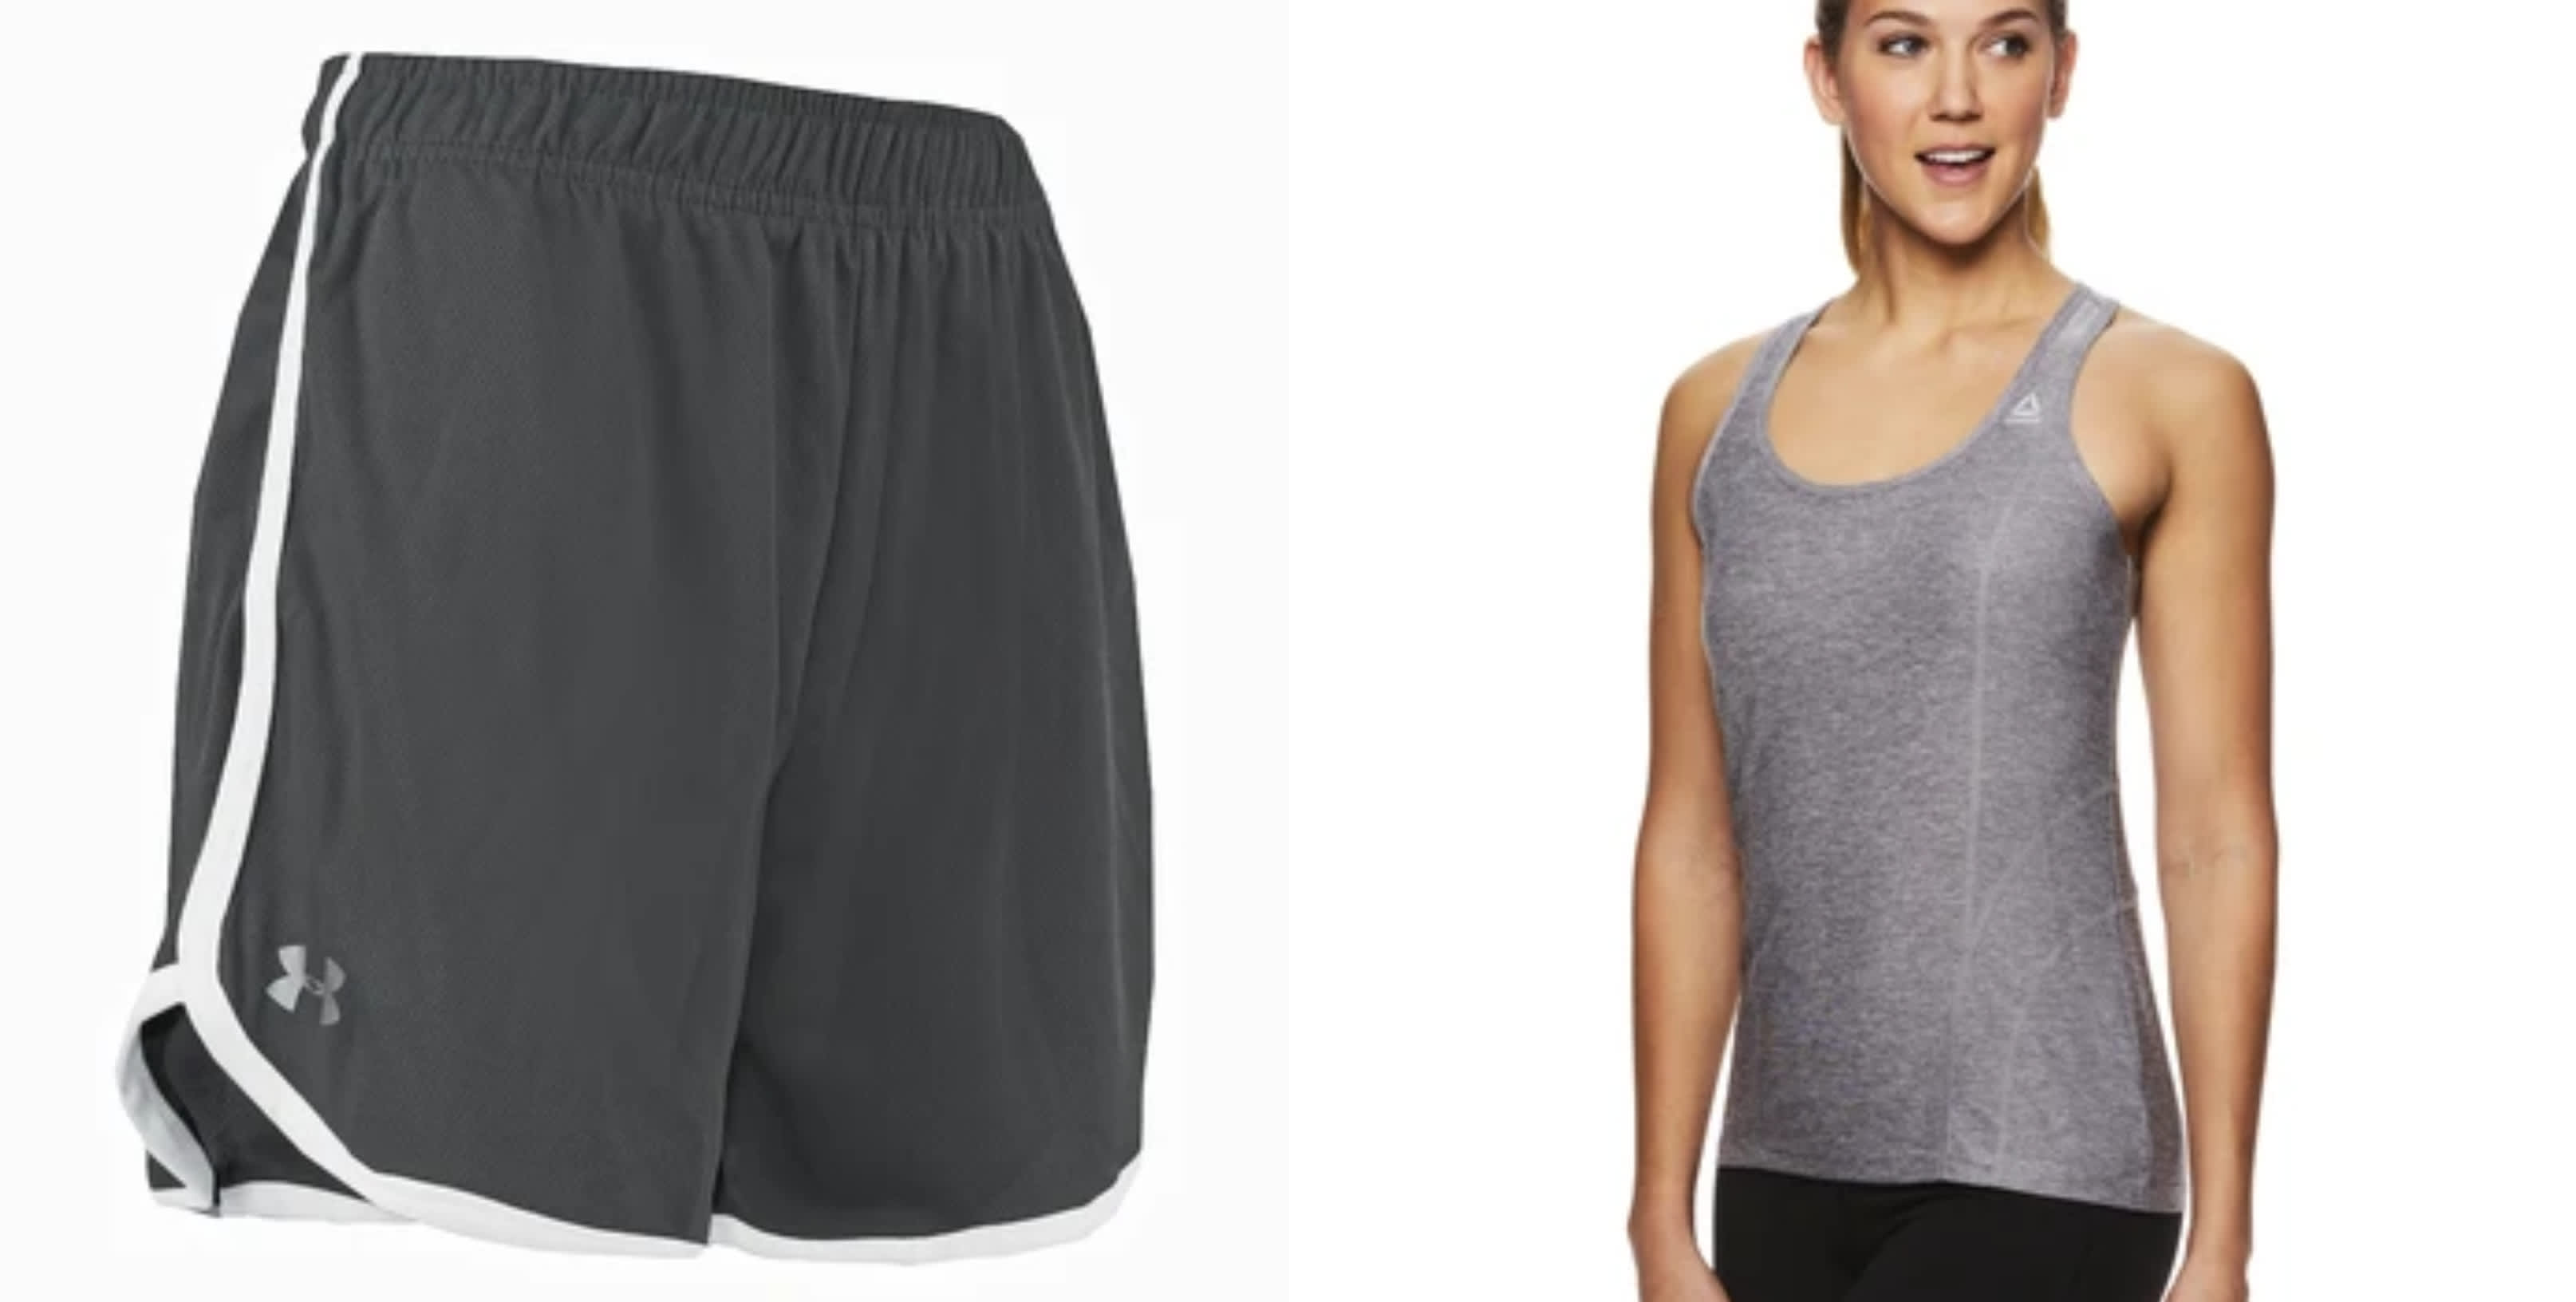 Under Armour Women's Shorts + Reebok Tank Top